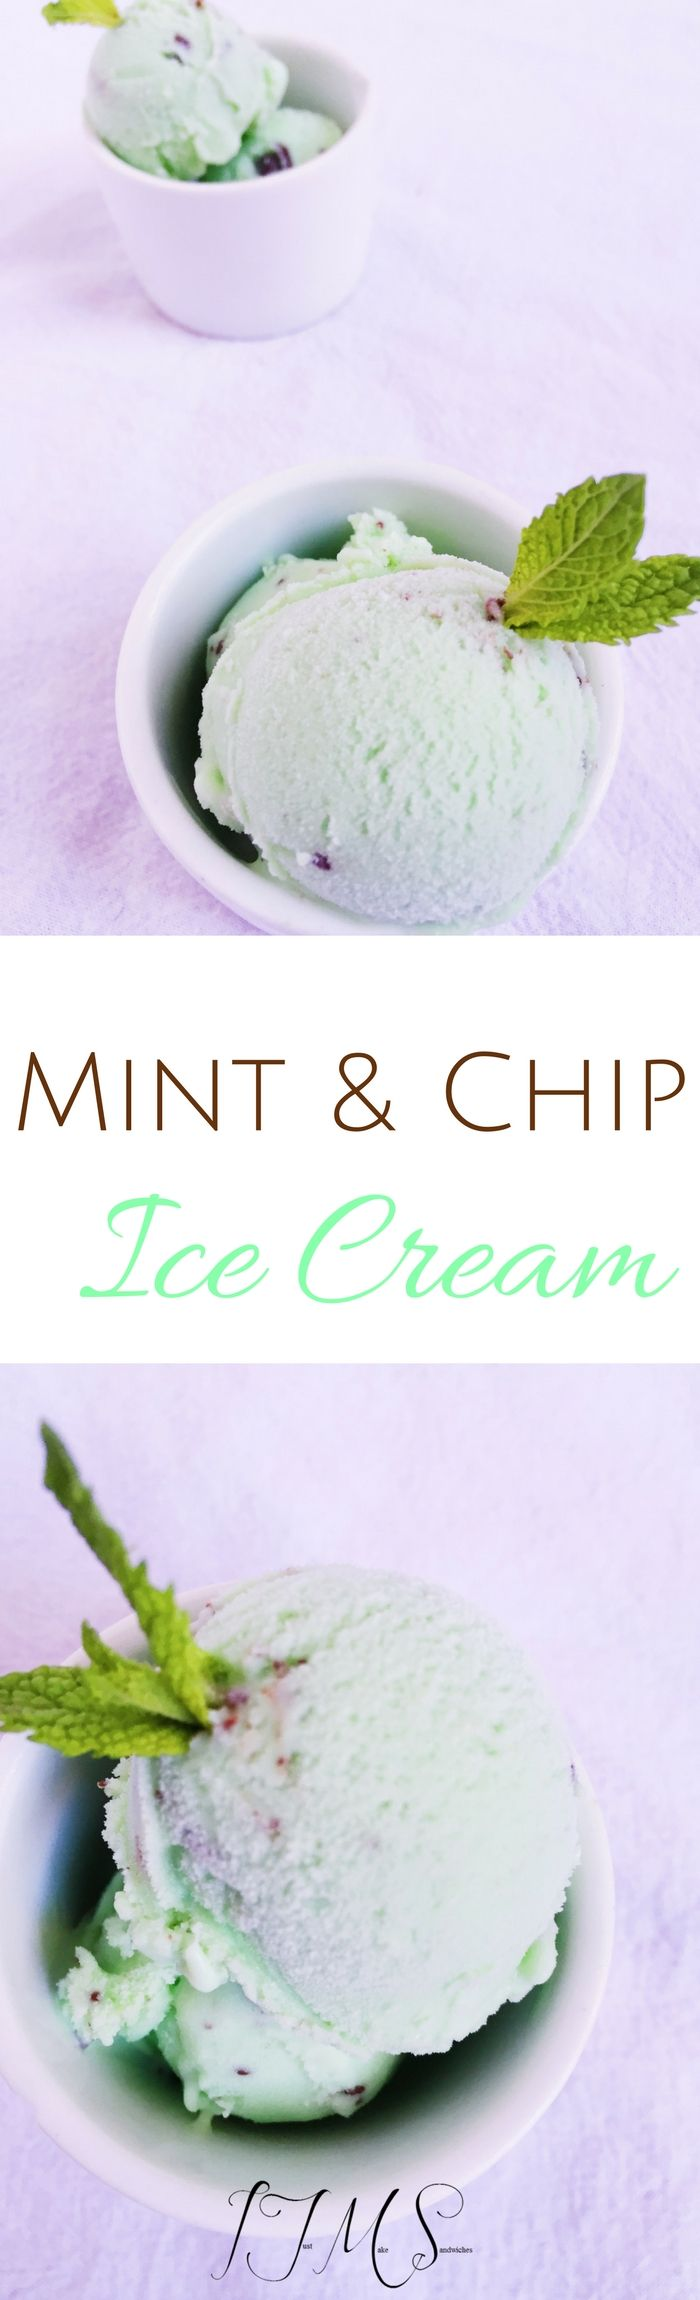 Those who know me, know that my favorite ice cream of all time is Mint n' Chip ice cream... that's my first pick without fail!